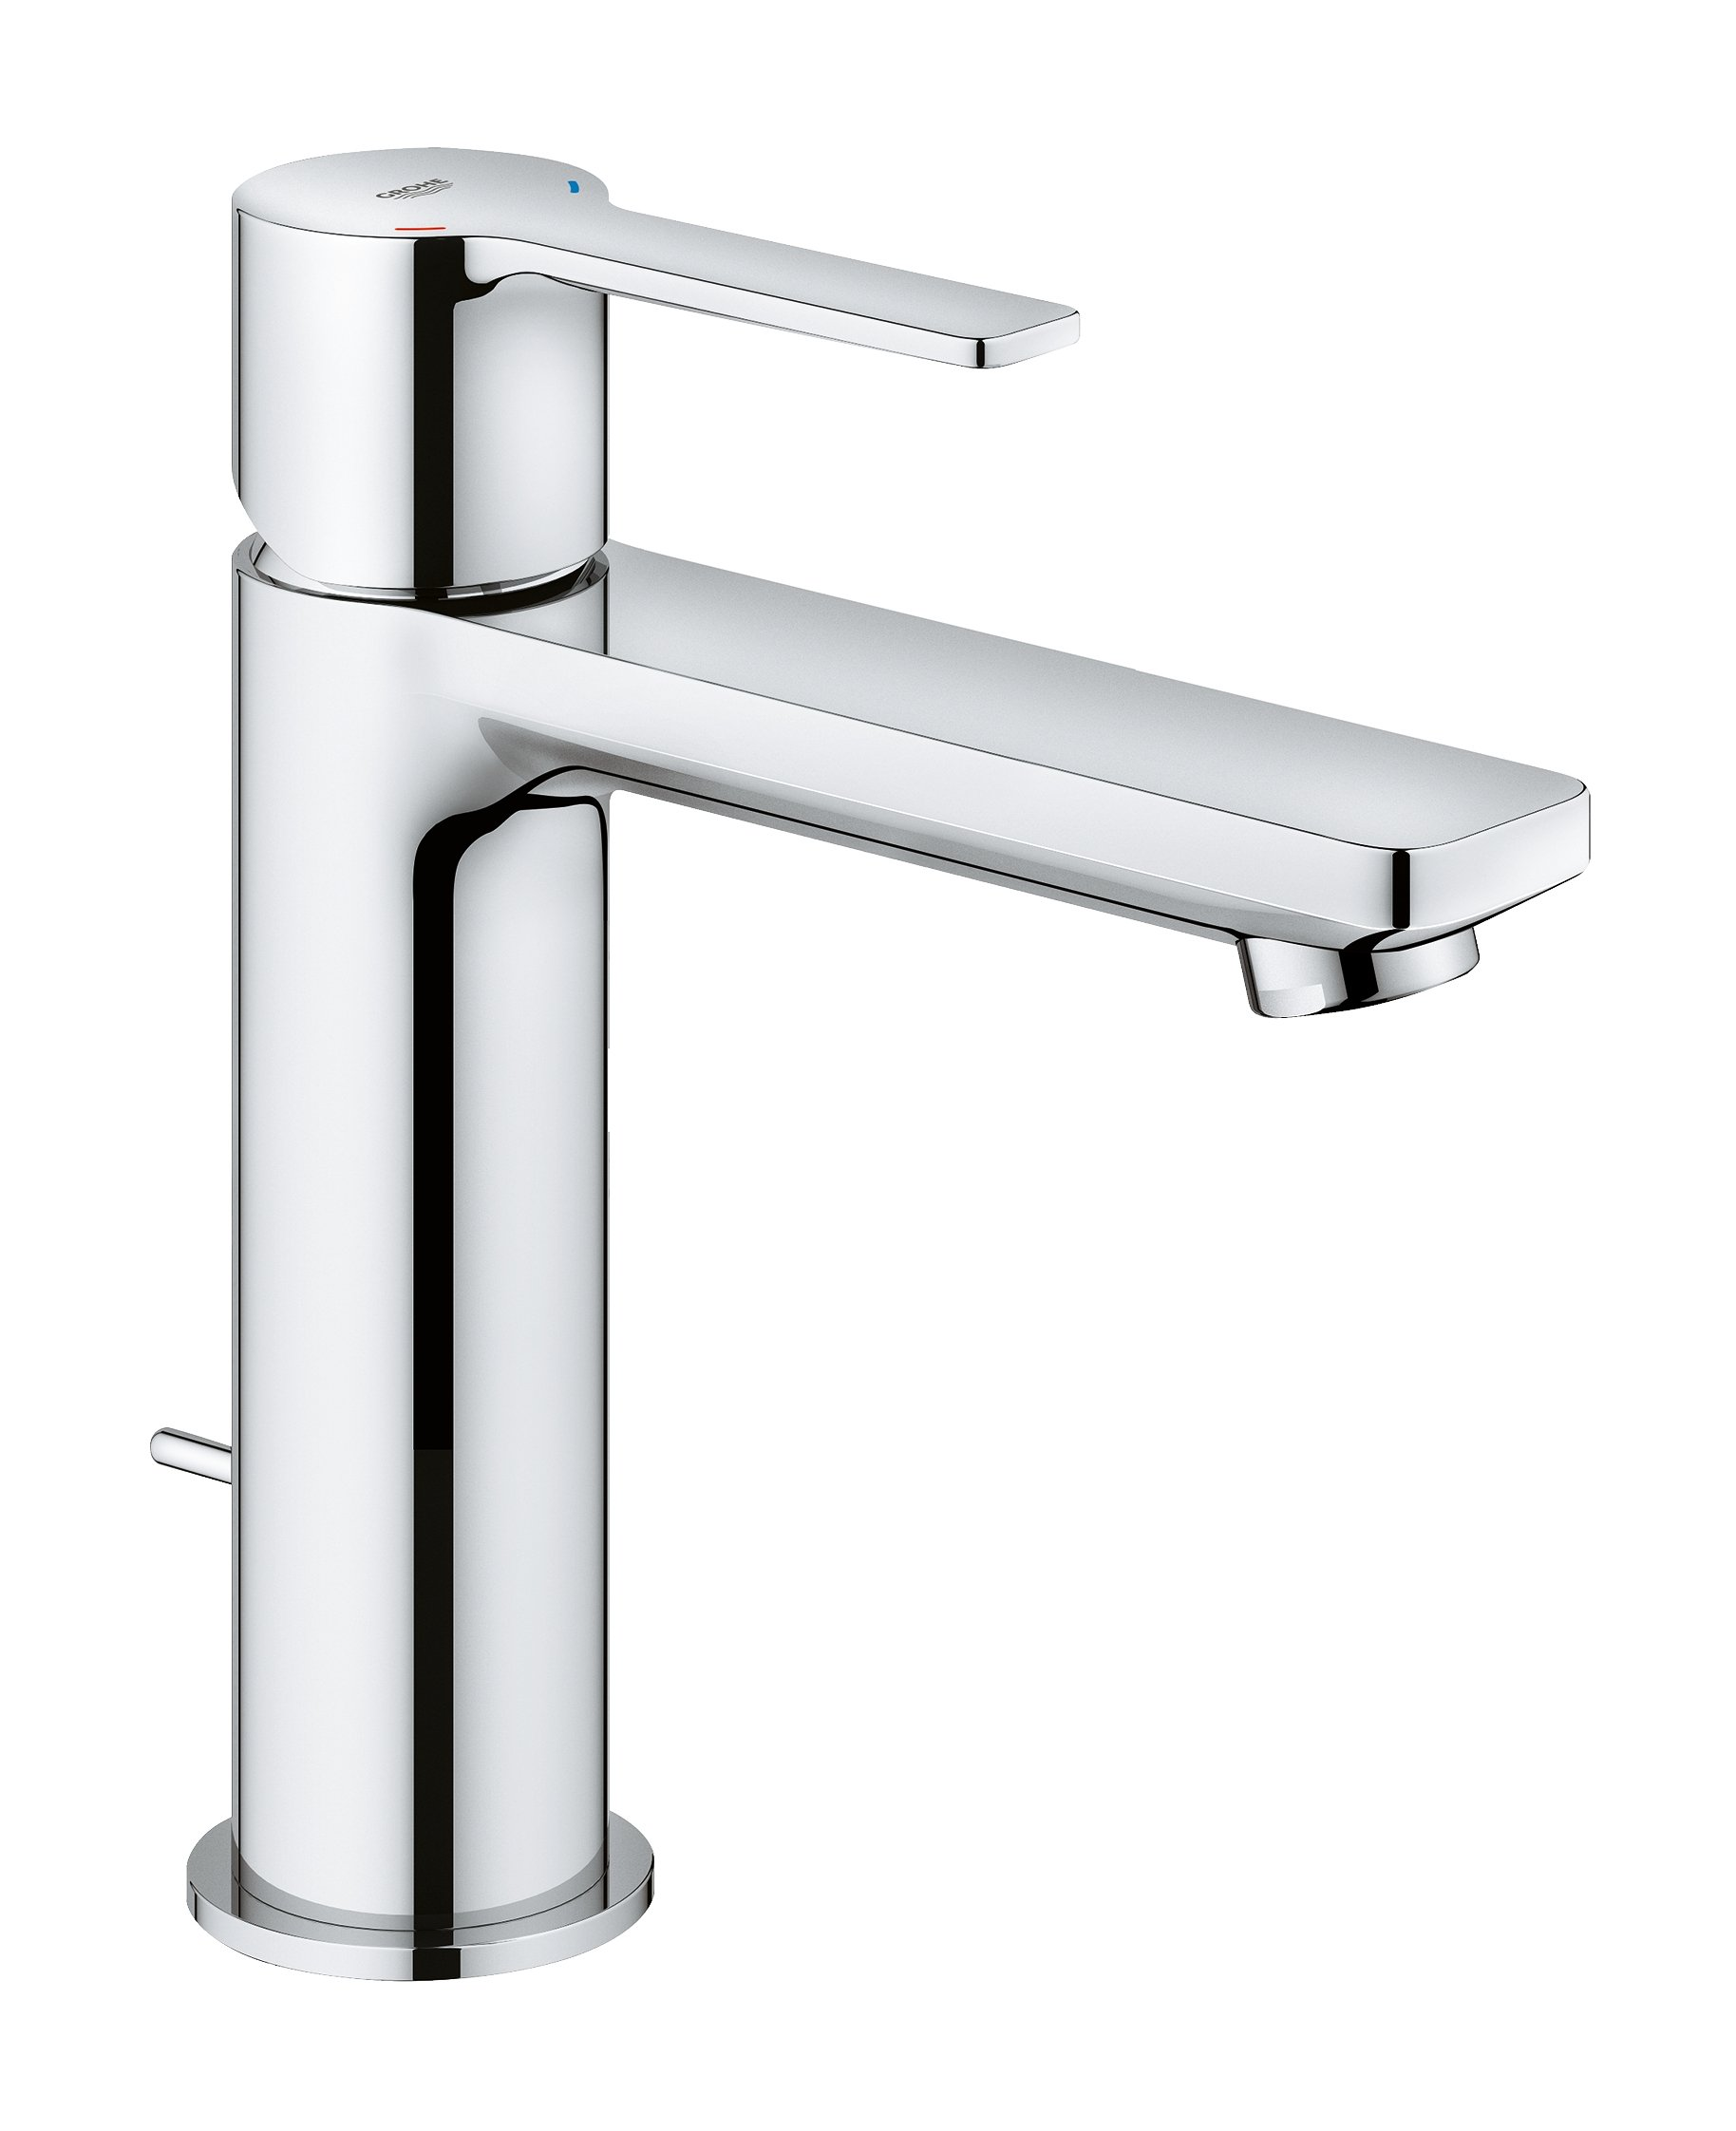 Grohe 32114001 Lineare Mitigeur Lavabo, Chrome, Taille S